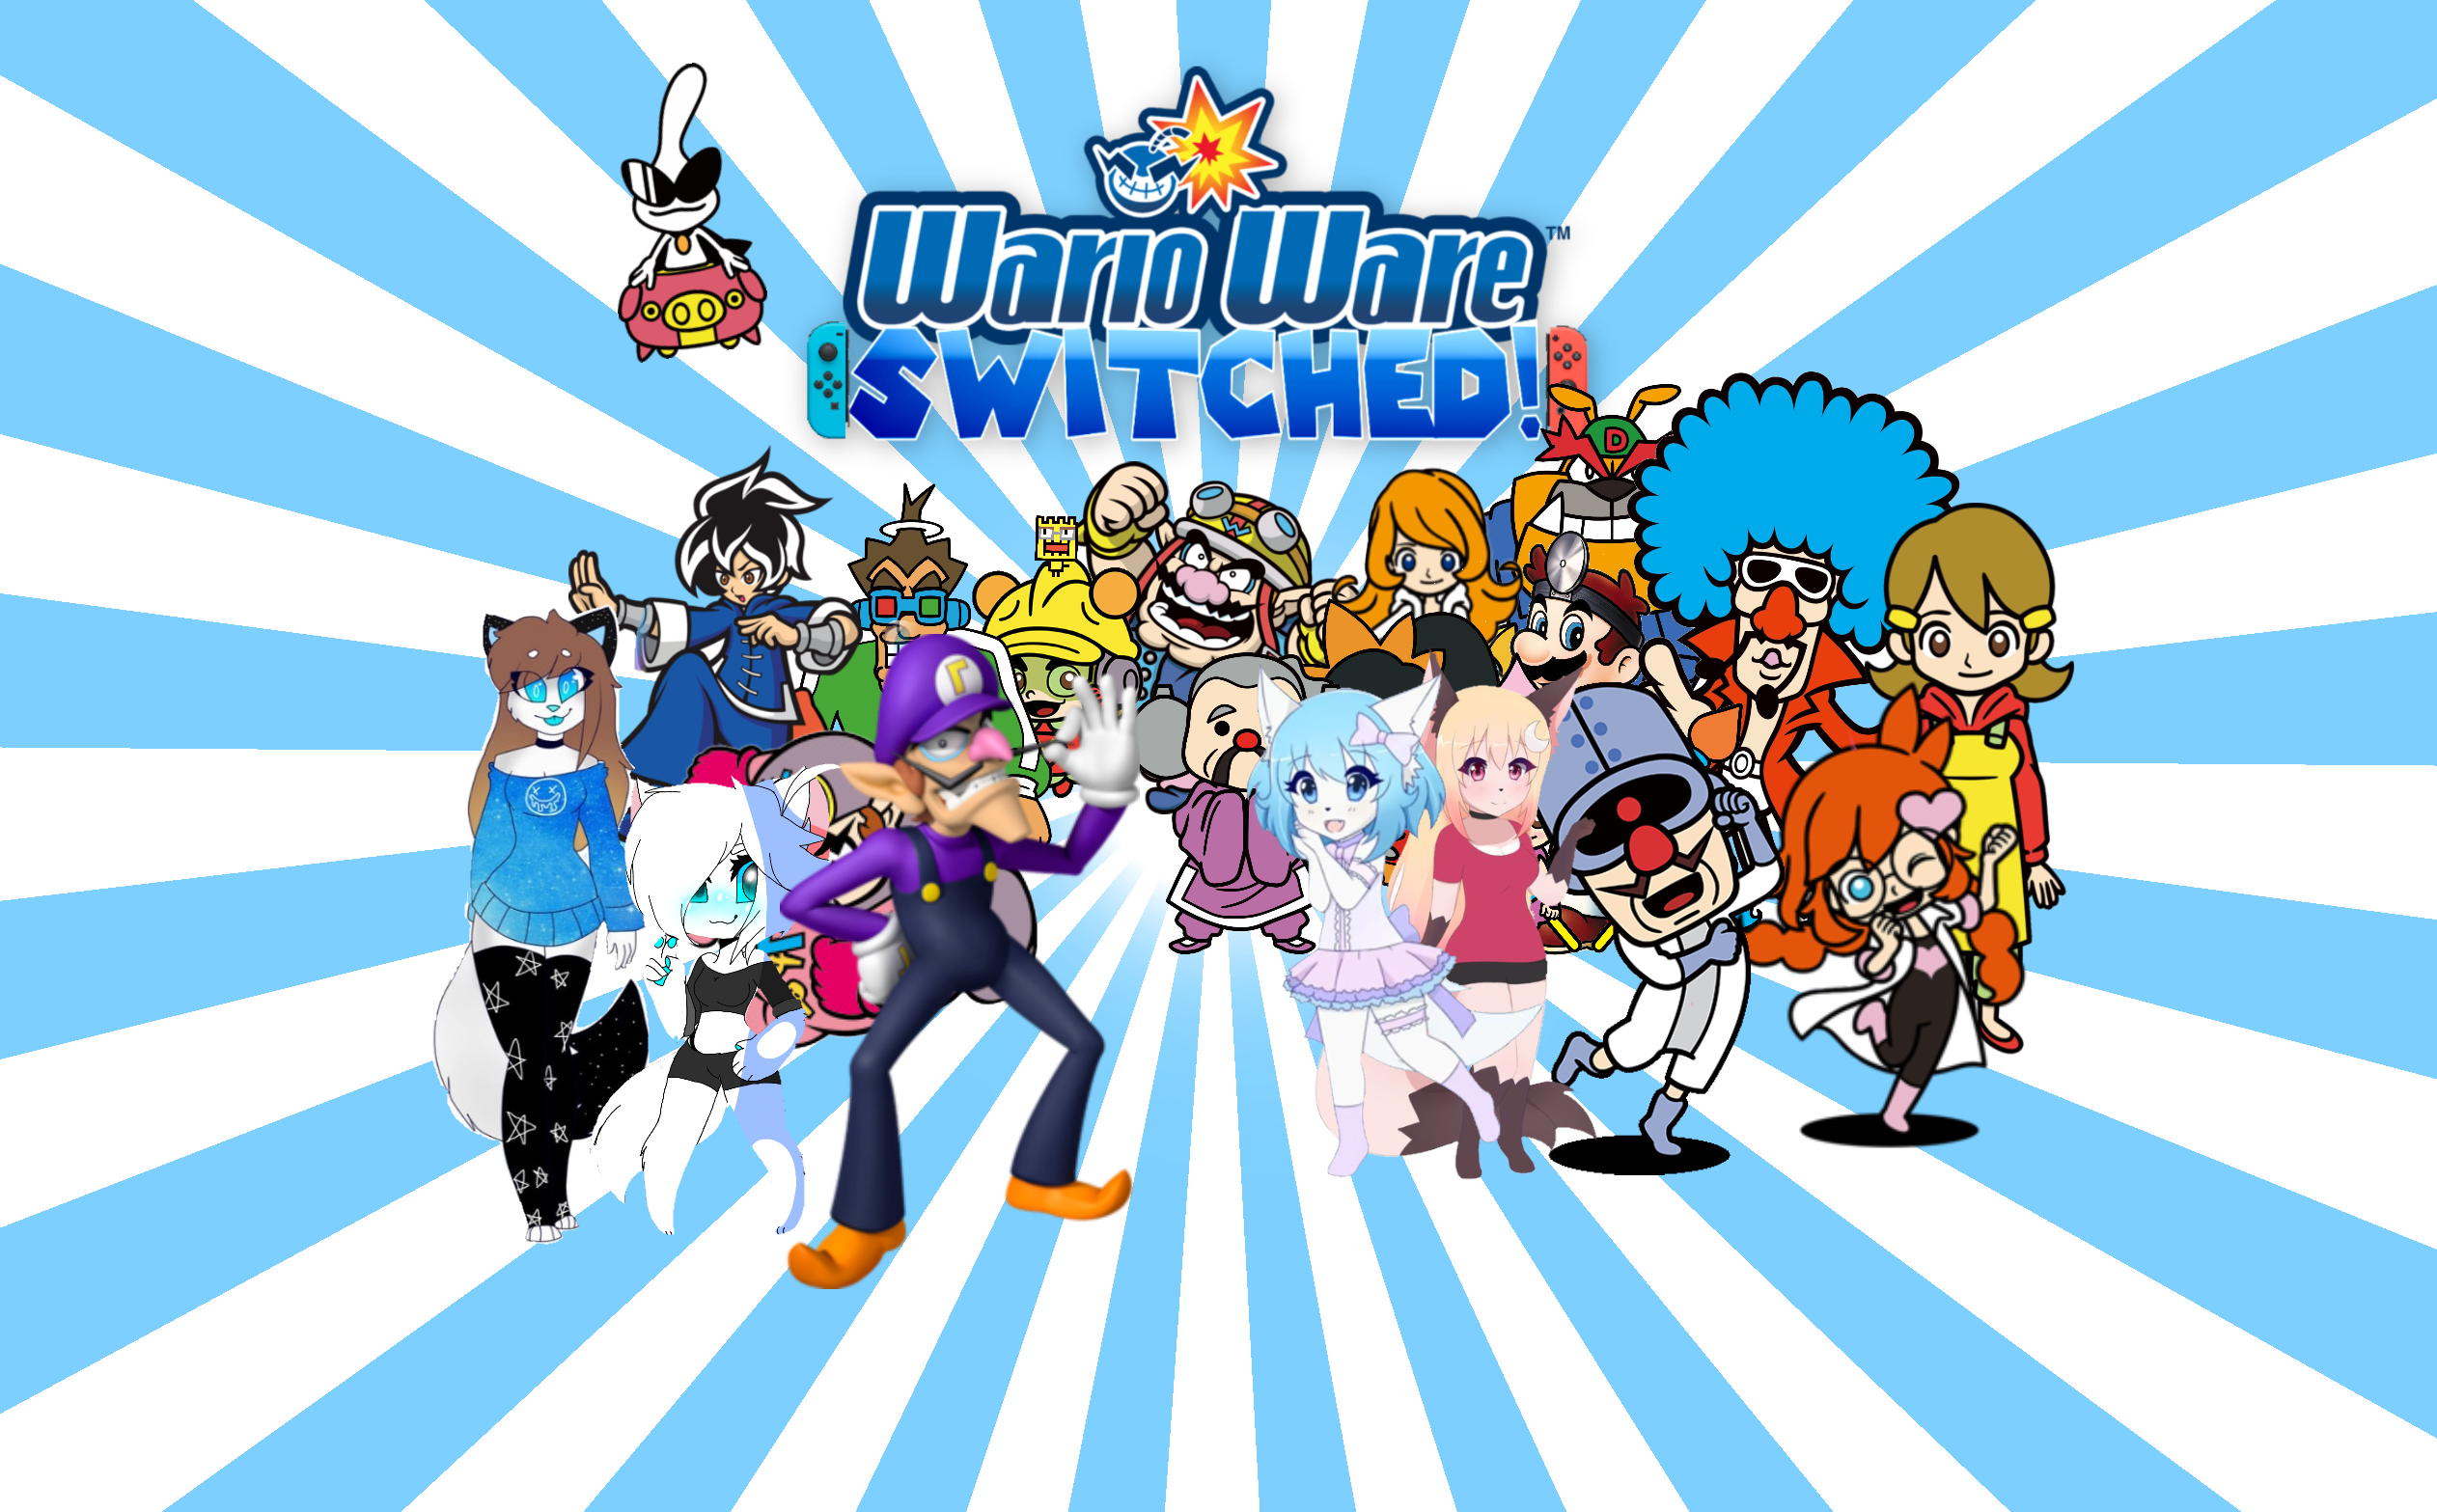 WarioWare Switched